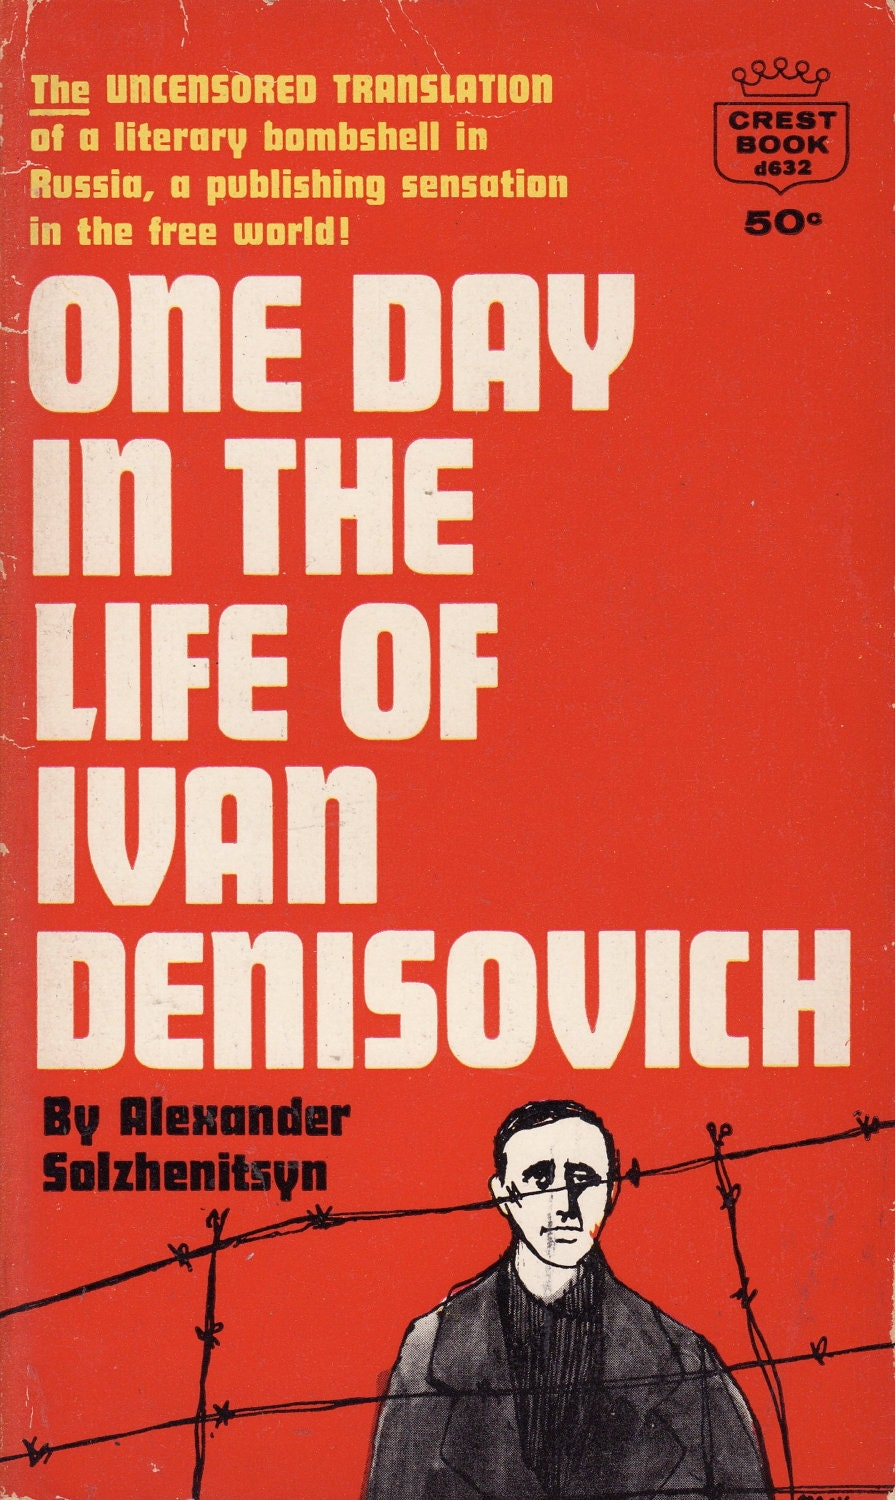 the theme of survival in one day in the life of ivan denisovich by aleksandr solzhenitsyn The book, one day in the life of ivan denisovich by alexander solzhenitsyn is a book with many hidden themes and symbols this book based on a day in a stalinist labor camp through the eyes of the main character shukhov.